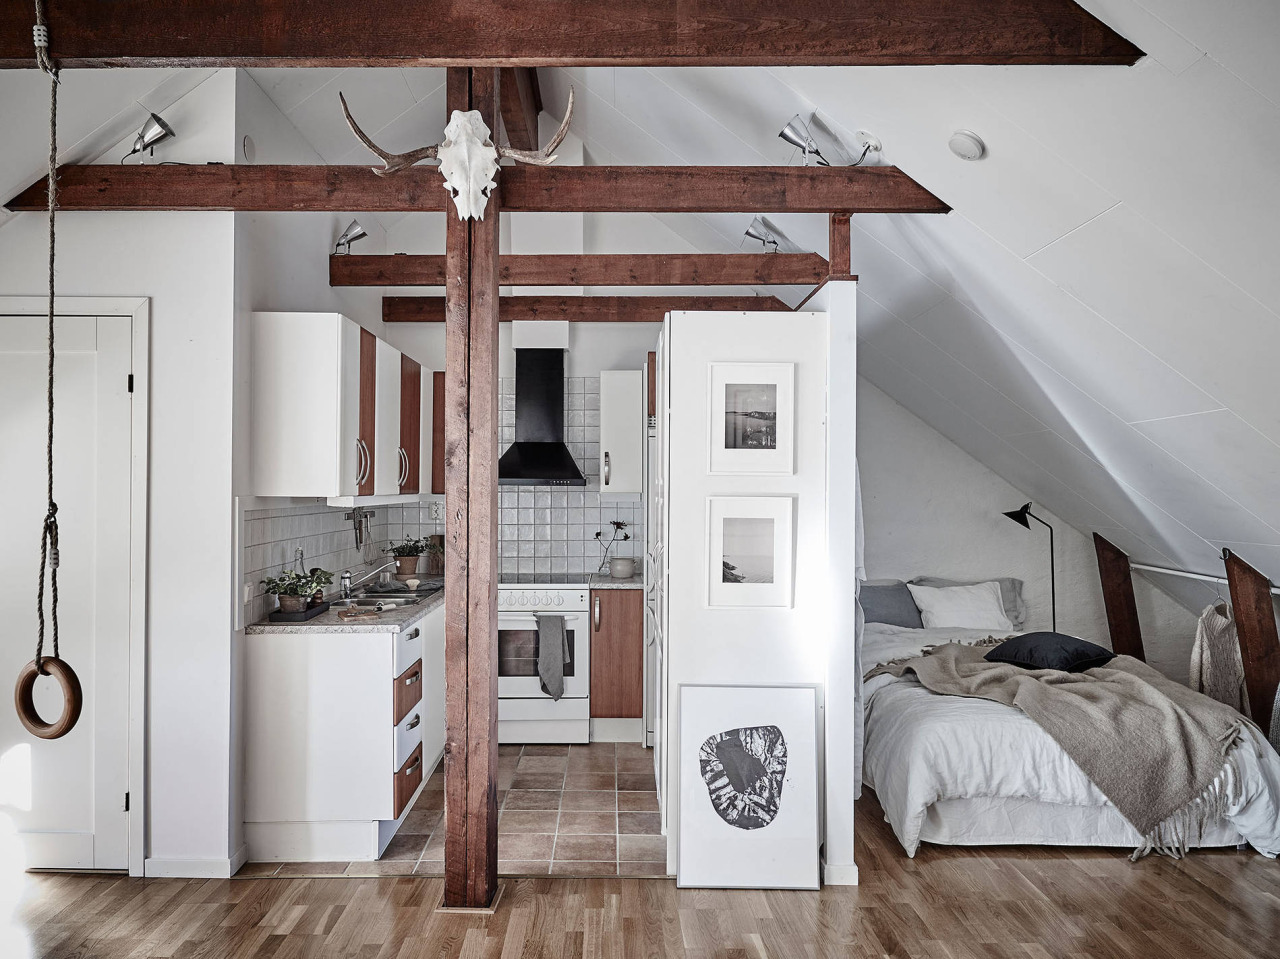 Dreamy Scandinavian Attic Studio Daily Dream Decor